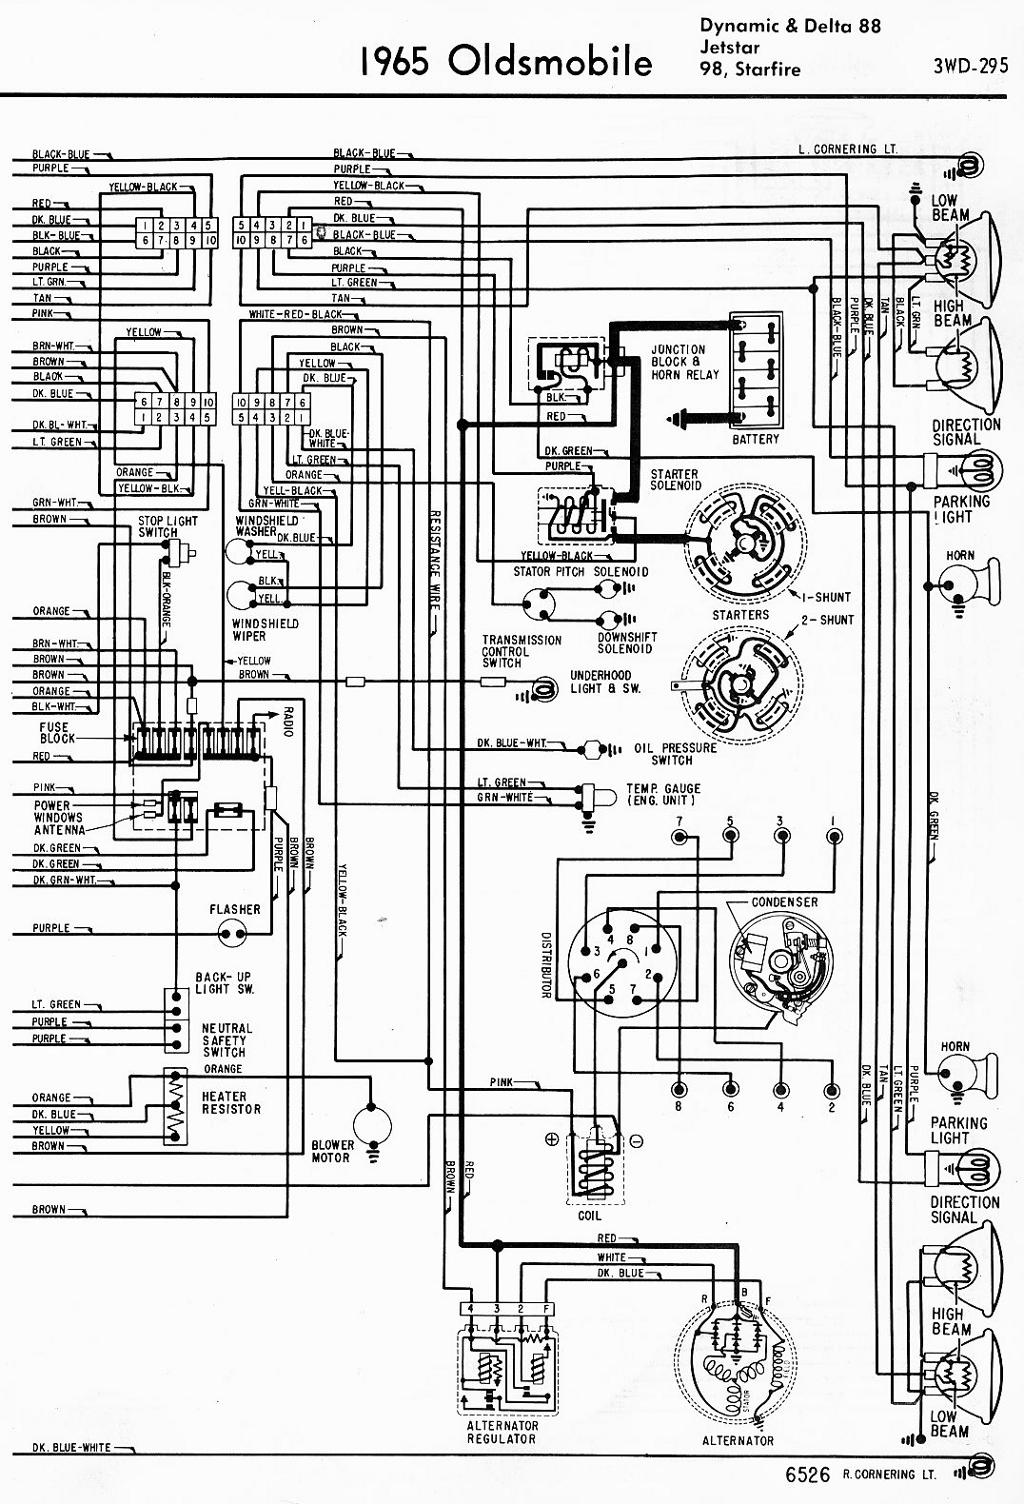 88 Buick Park Avenue Wiring Diagram Auto Electrical Citroen Berlingo Klr 650 Gmc For A 1966 Dynamic